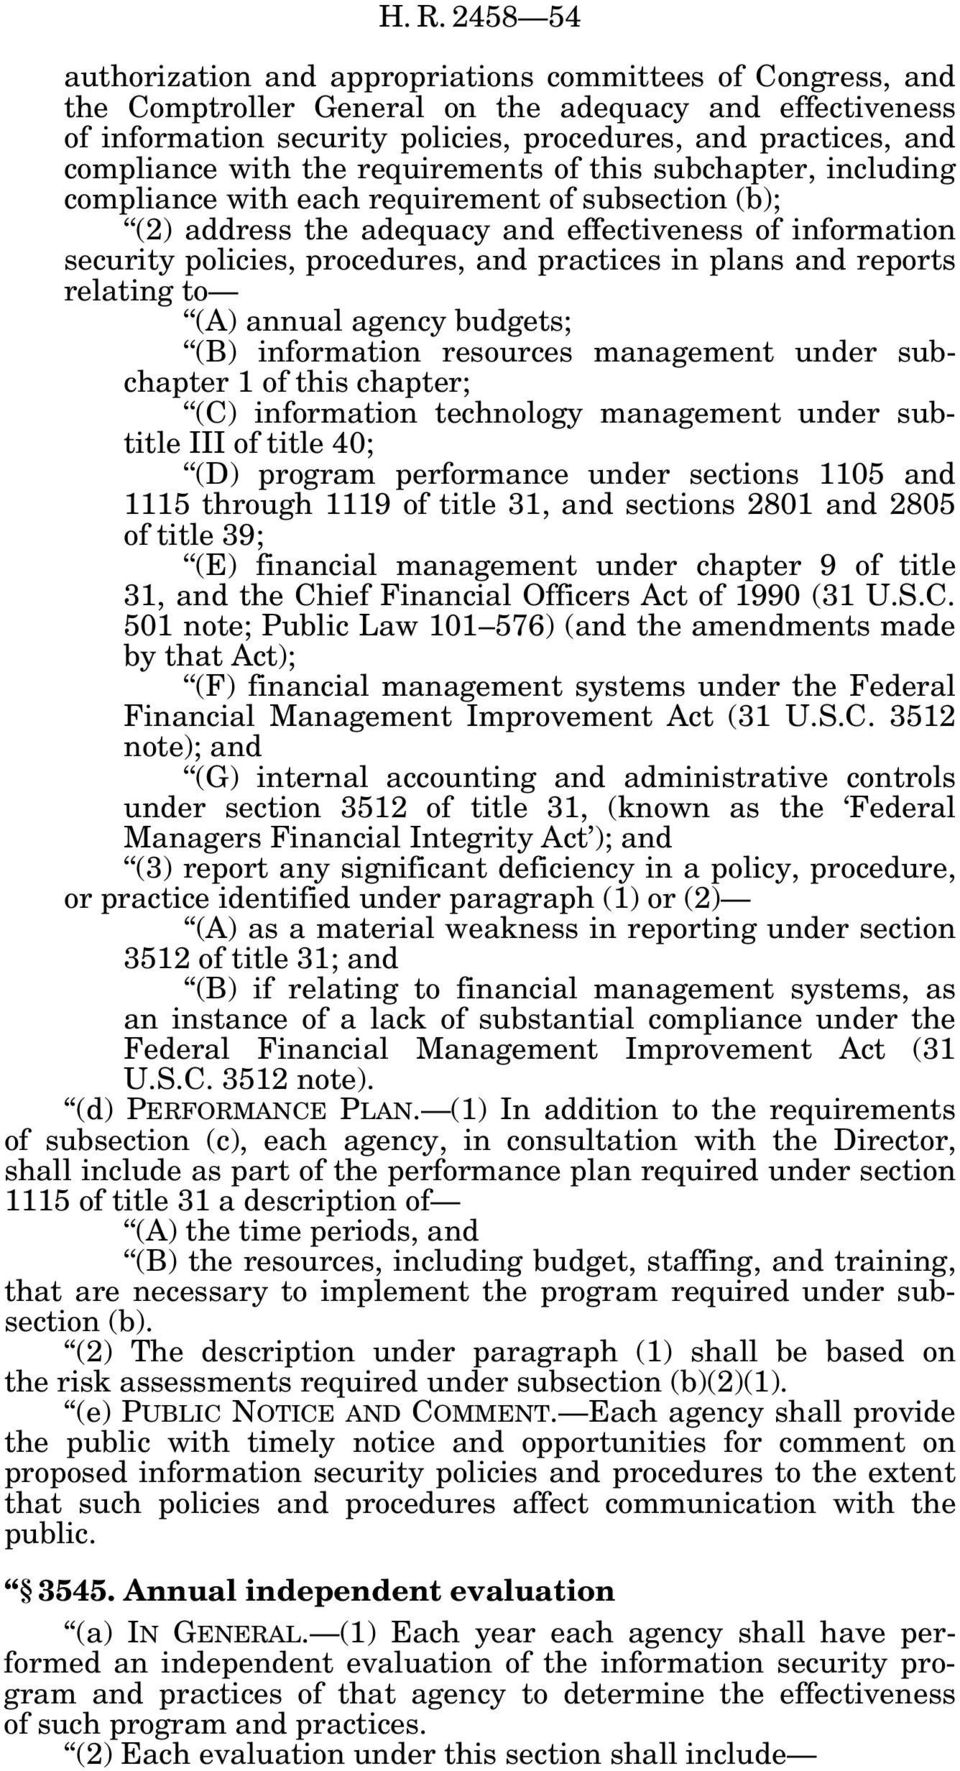 procedures, and practices in plans and reports relating to (A) annual agency budgets; (B) information resources management under subchapter 1 of this chapter; (C) information technology management